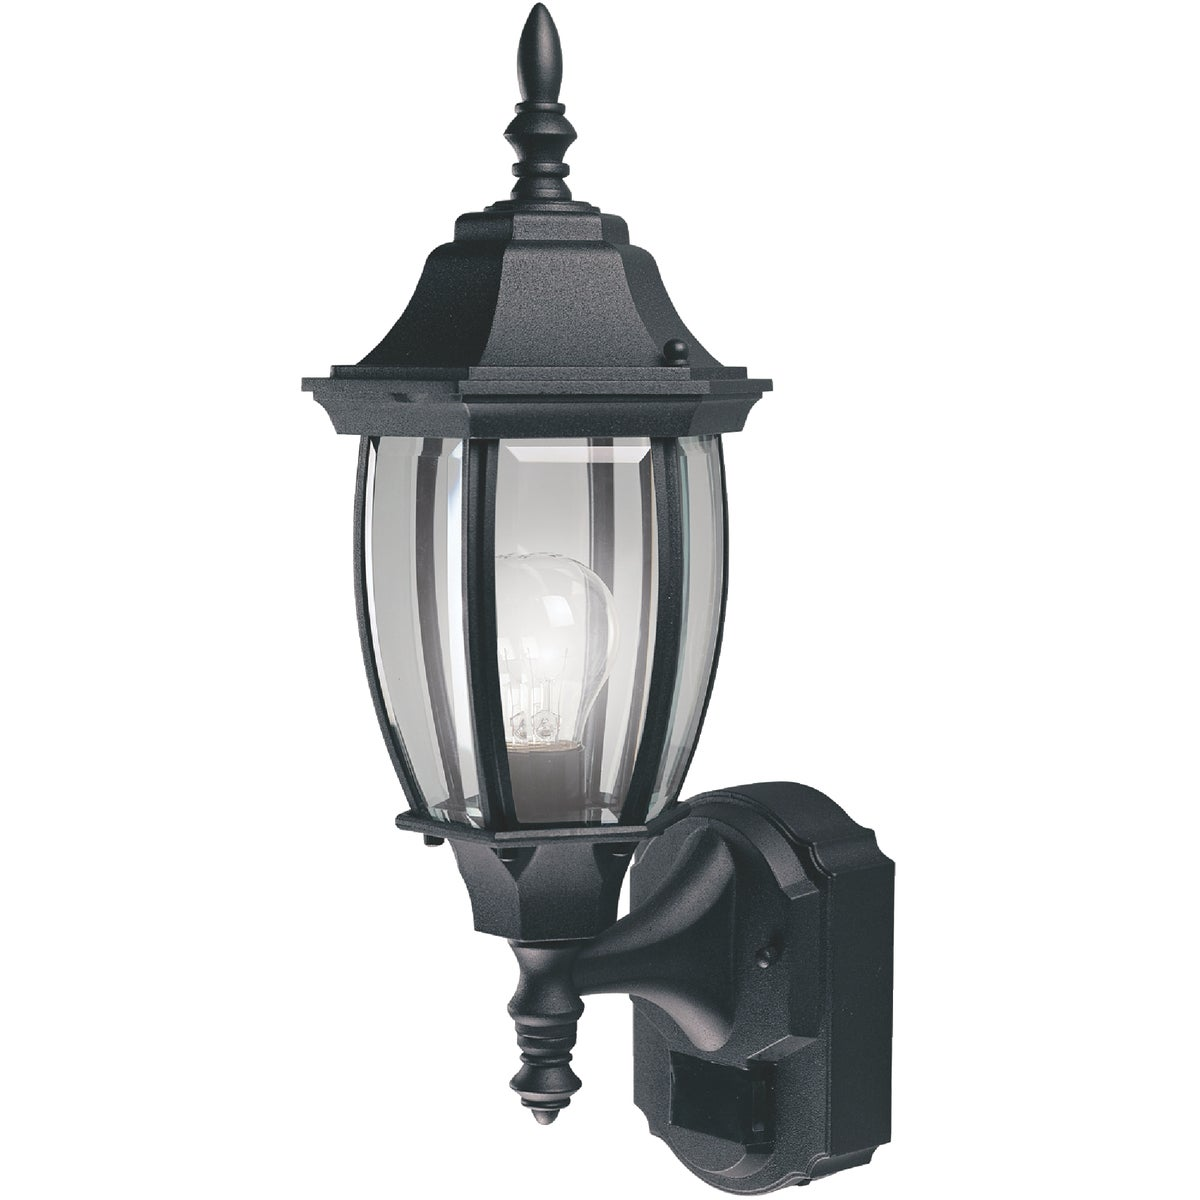 BLACK MOTION FIXTURE - HZ-4192-BK by Heathco Llc